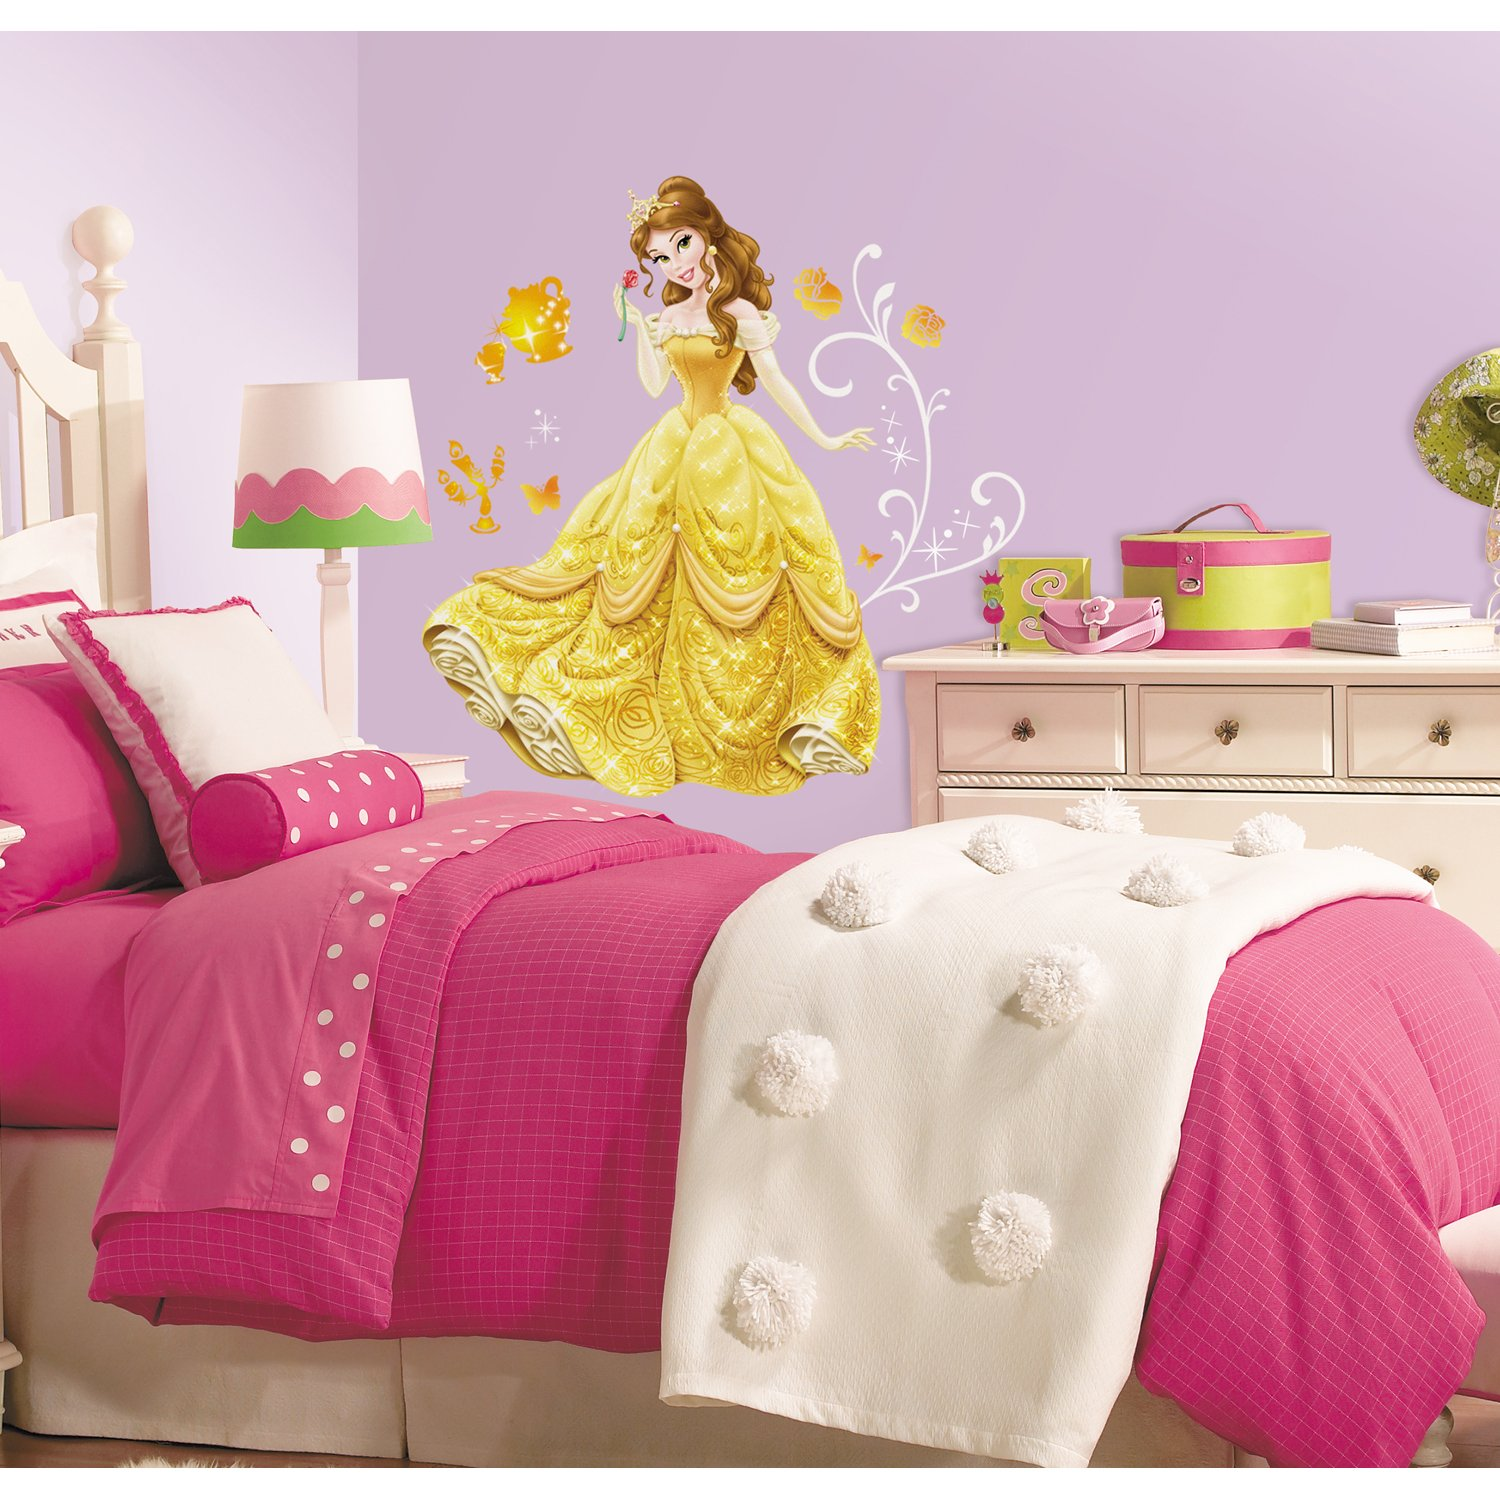 Disney Princess - Belle Peel And Stick Giant Wall Decals